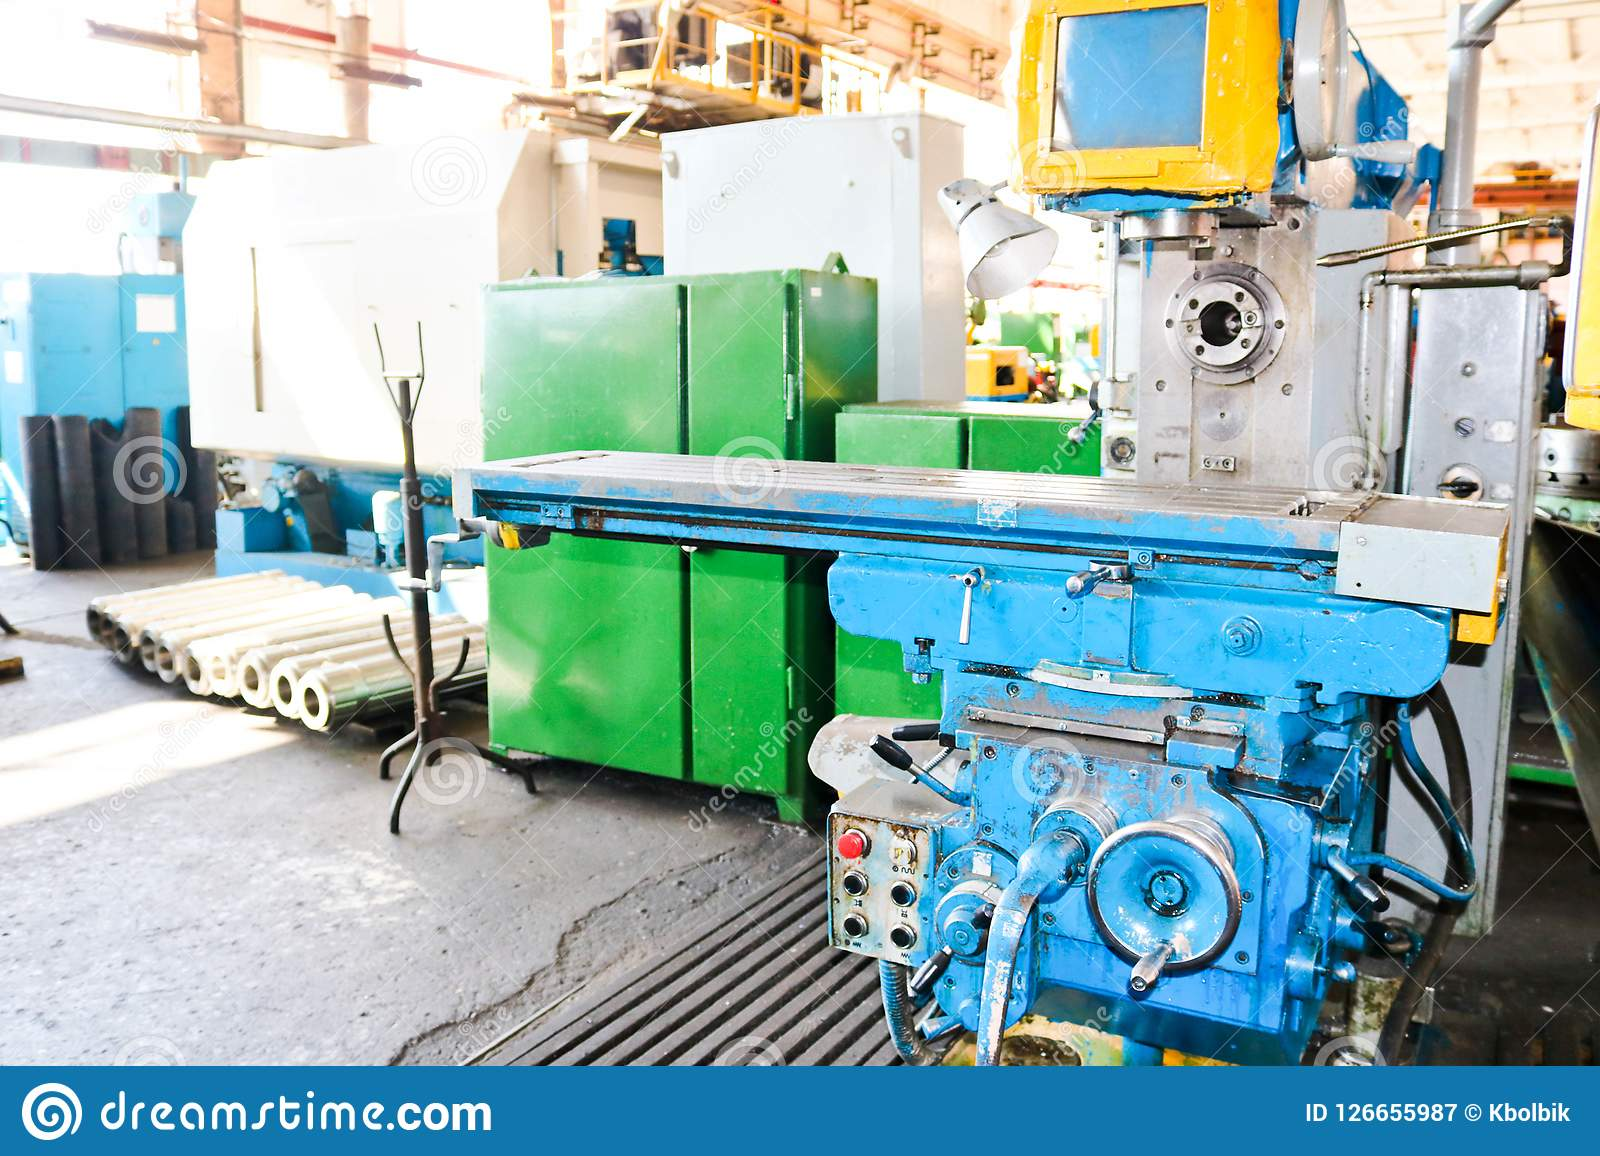 Industrial iron lathe for cutting, turning of billets from metals, wood and other materials, turning, manufacturing of details